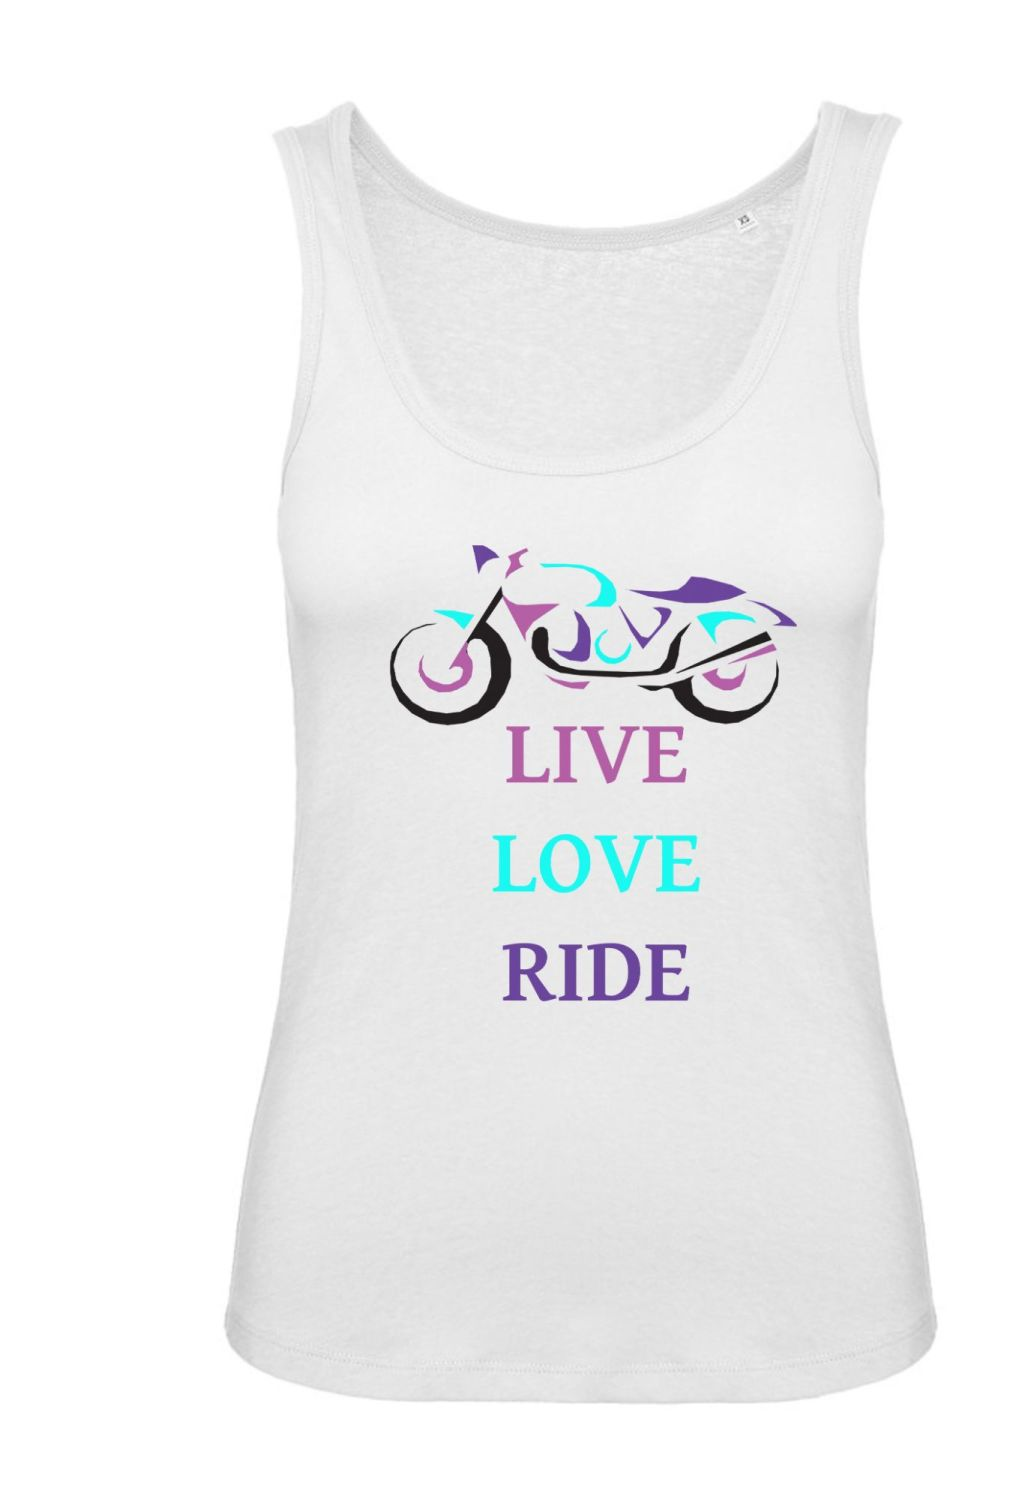 Women girl ladies biker motorcycle tshirt tee Live Love Ride black